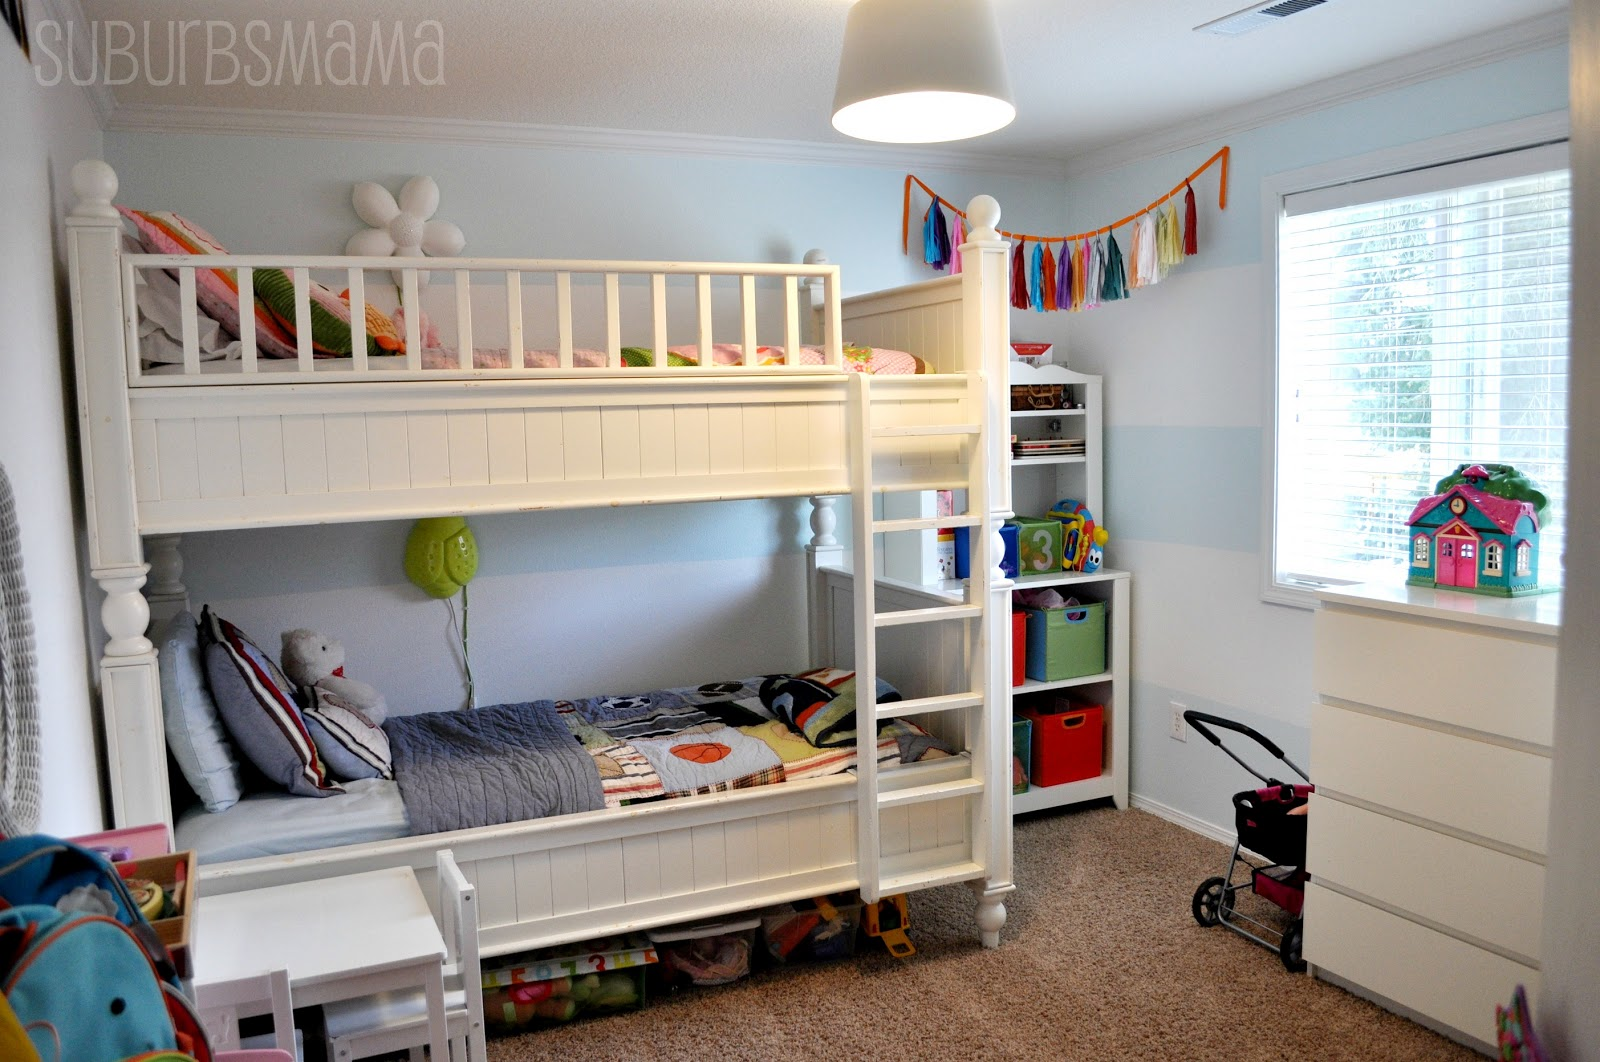 Suburbs mama new shared kids room tour for Bedroom ideas for girls sharing a room